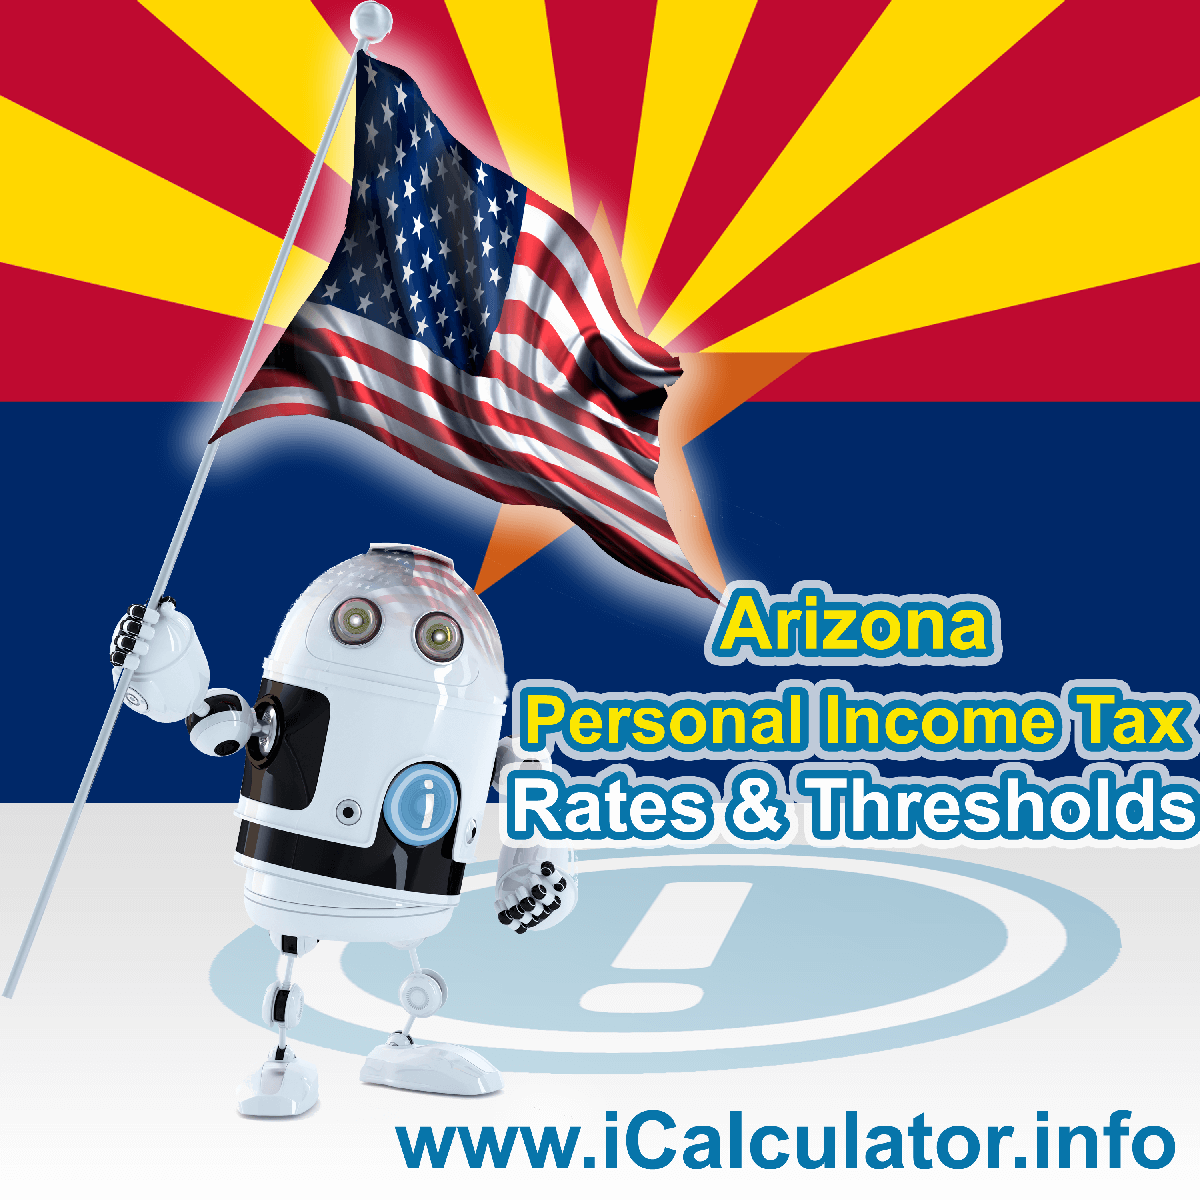 Arizona State Tax Tables 2019. This image displays details of the Arizona State Tax Tables for the 2019 tax return year which is provided in support of the 2019 US Tax Calculator